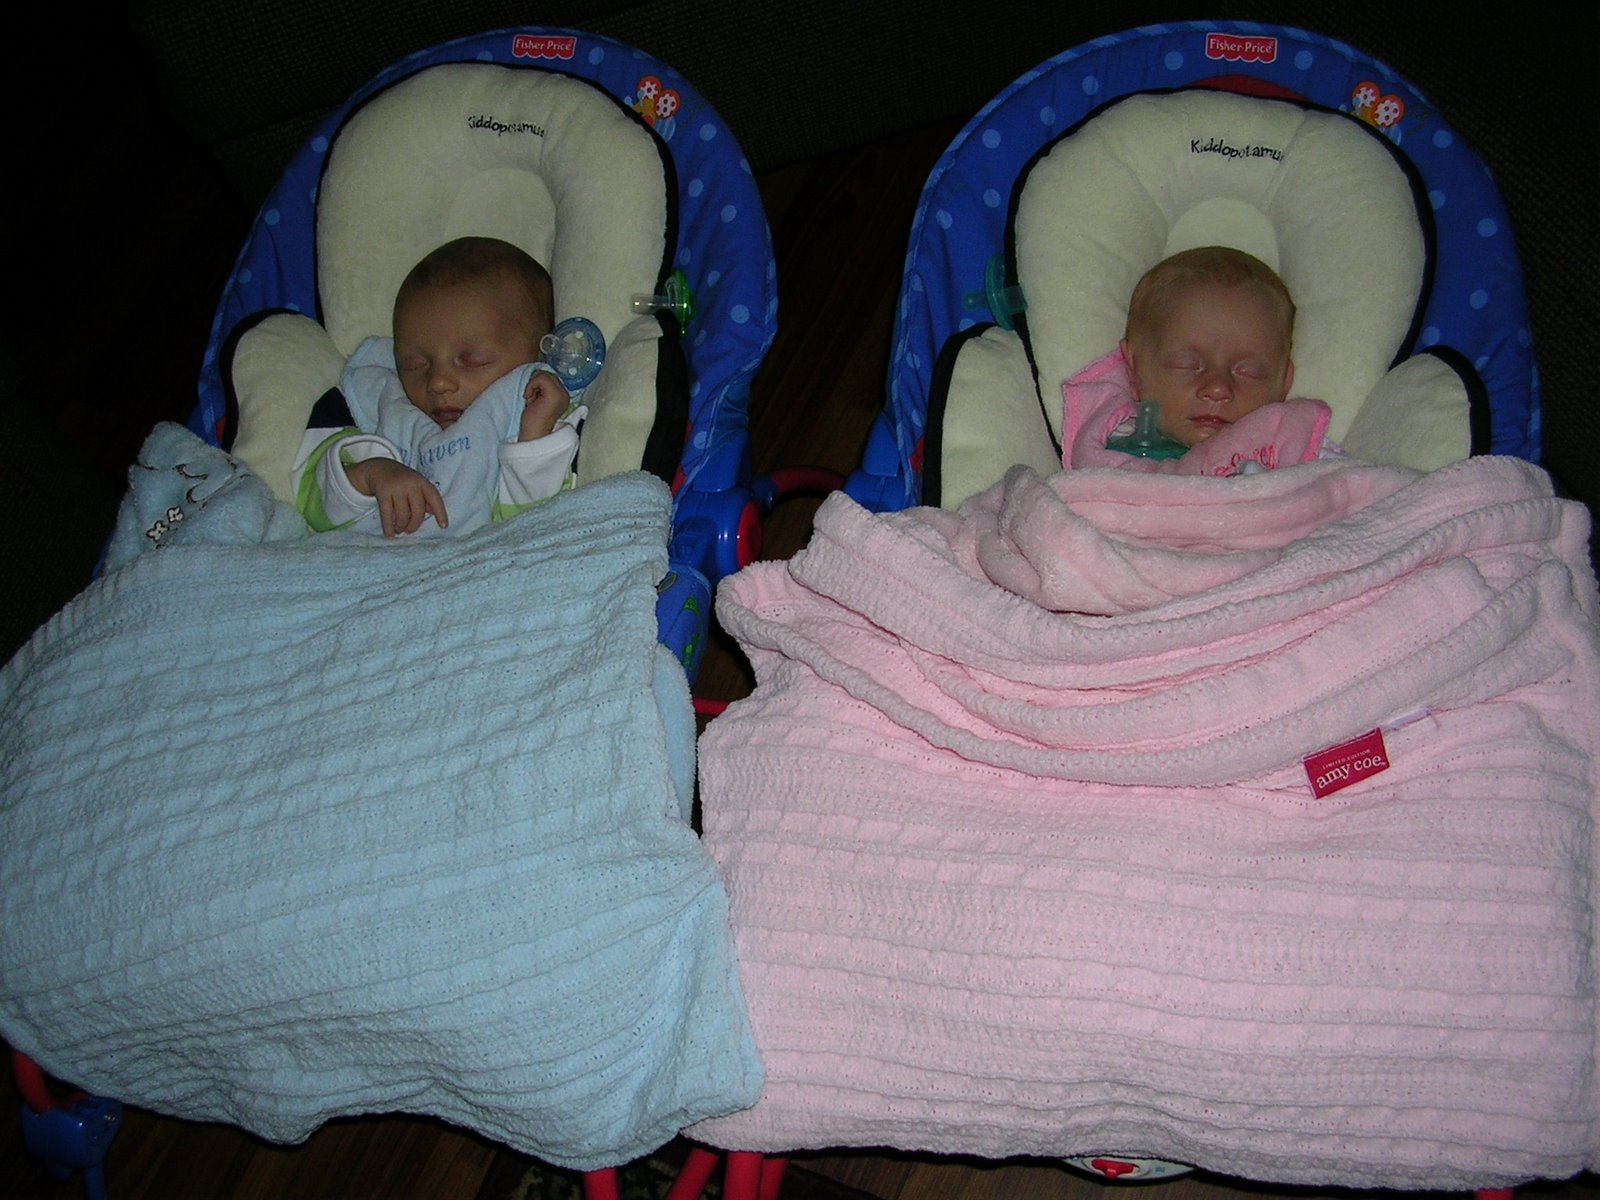 [Twins+in+their+chair]